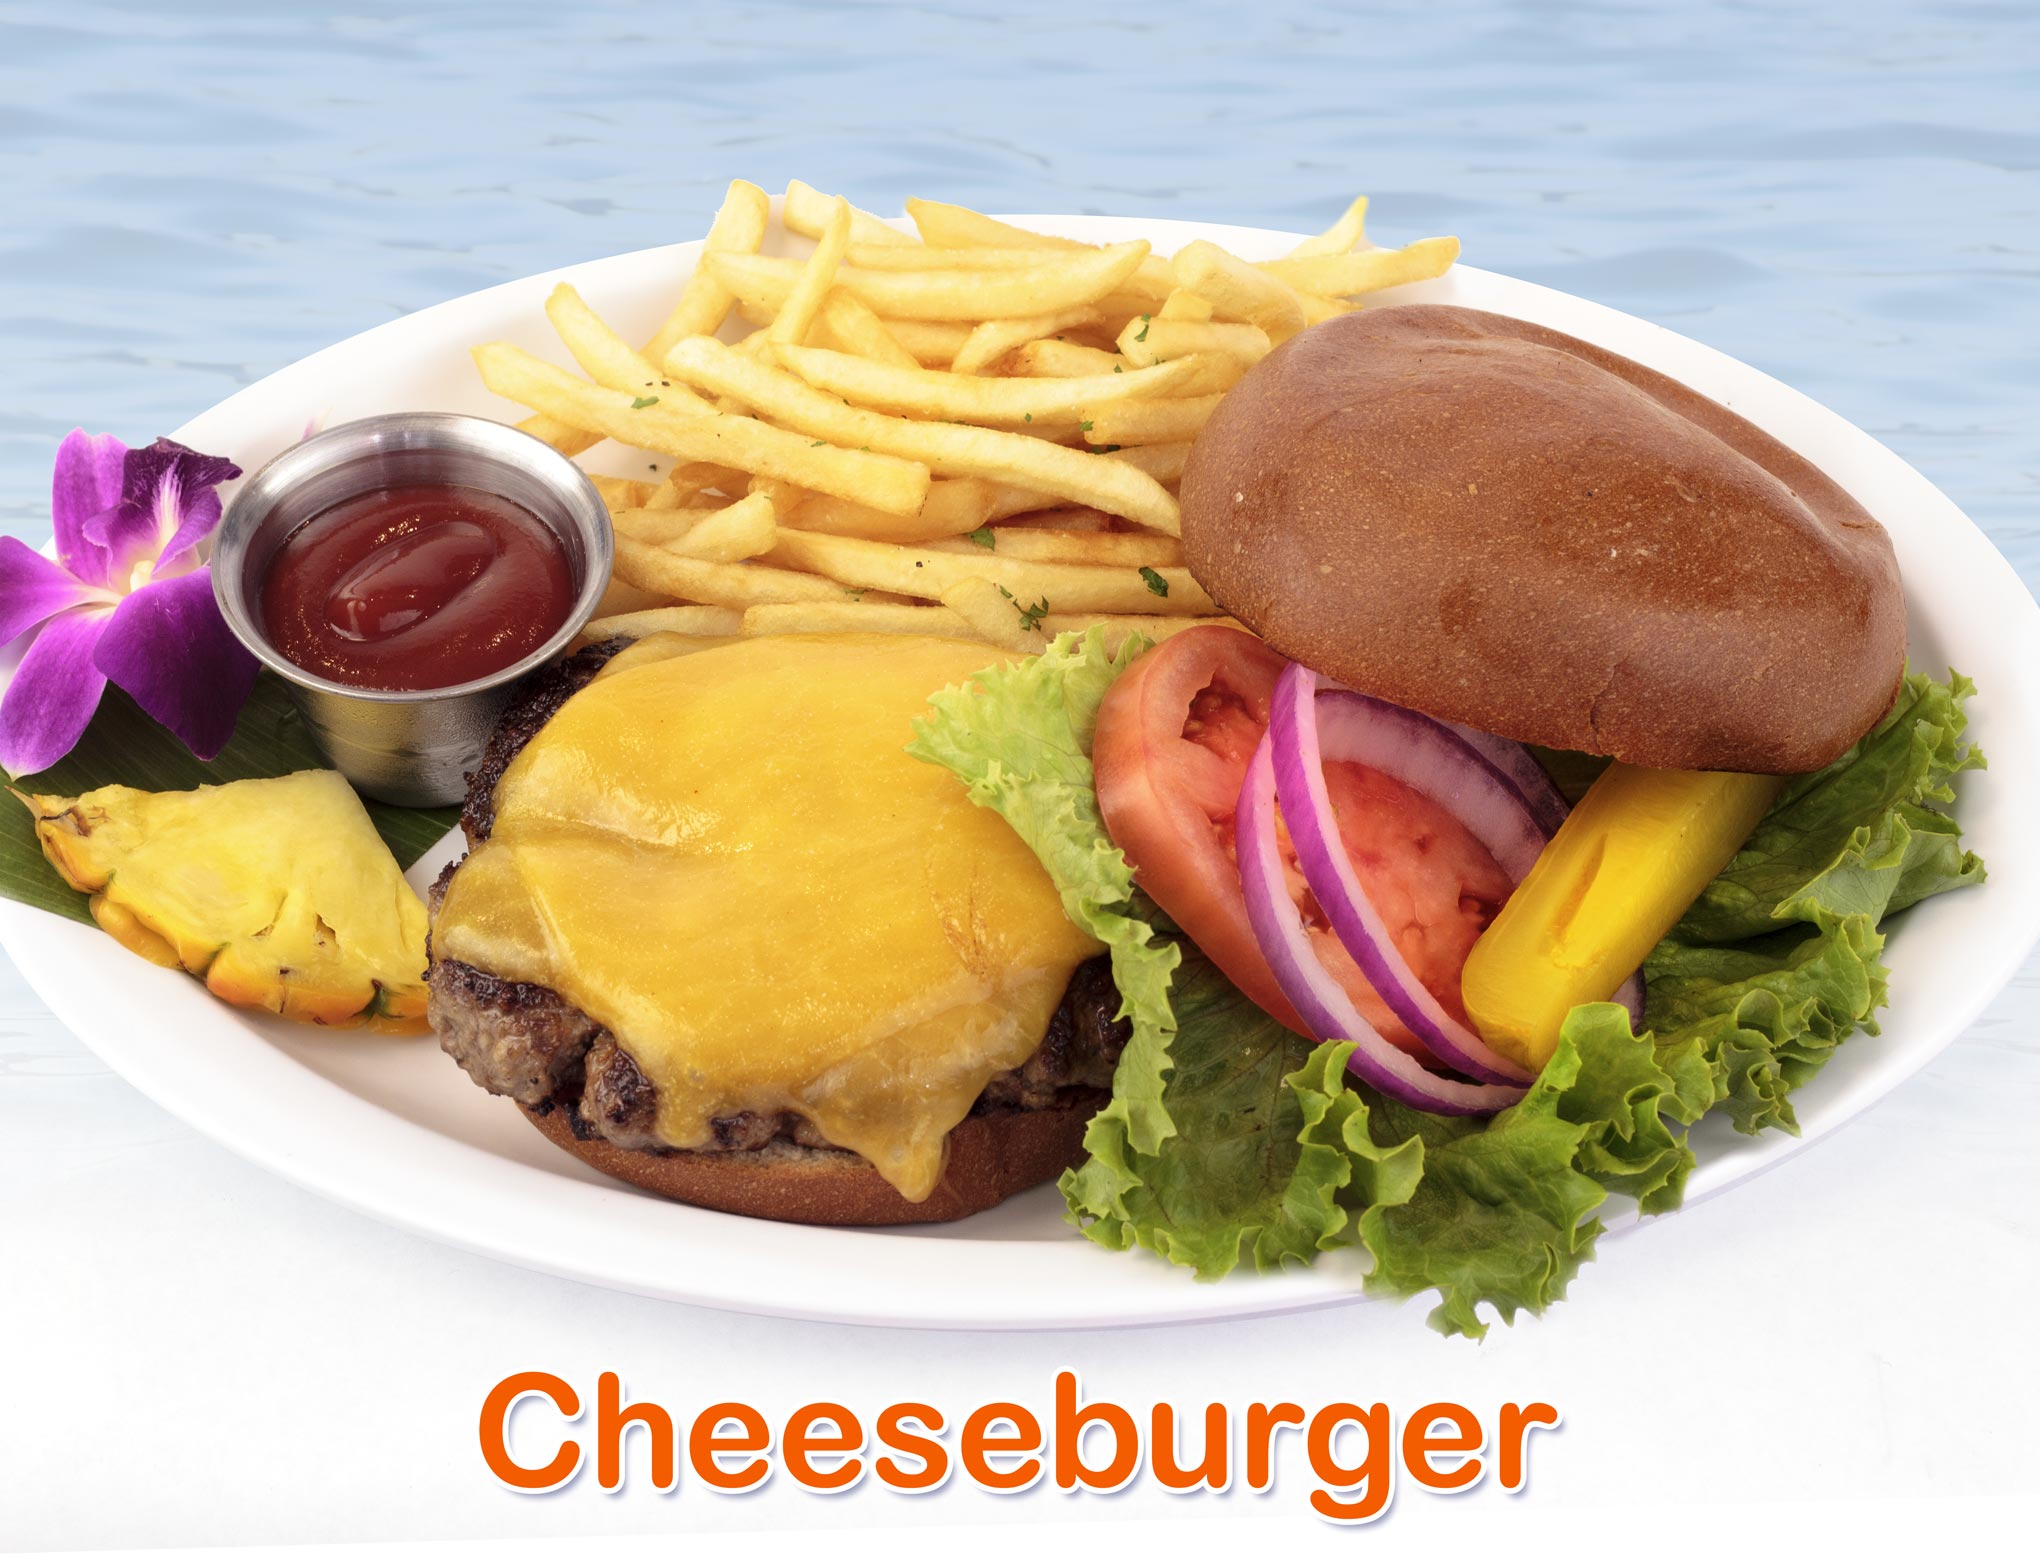 BWSS-menu_Cheeseburger